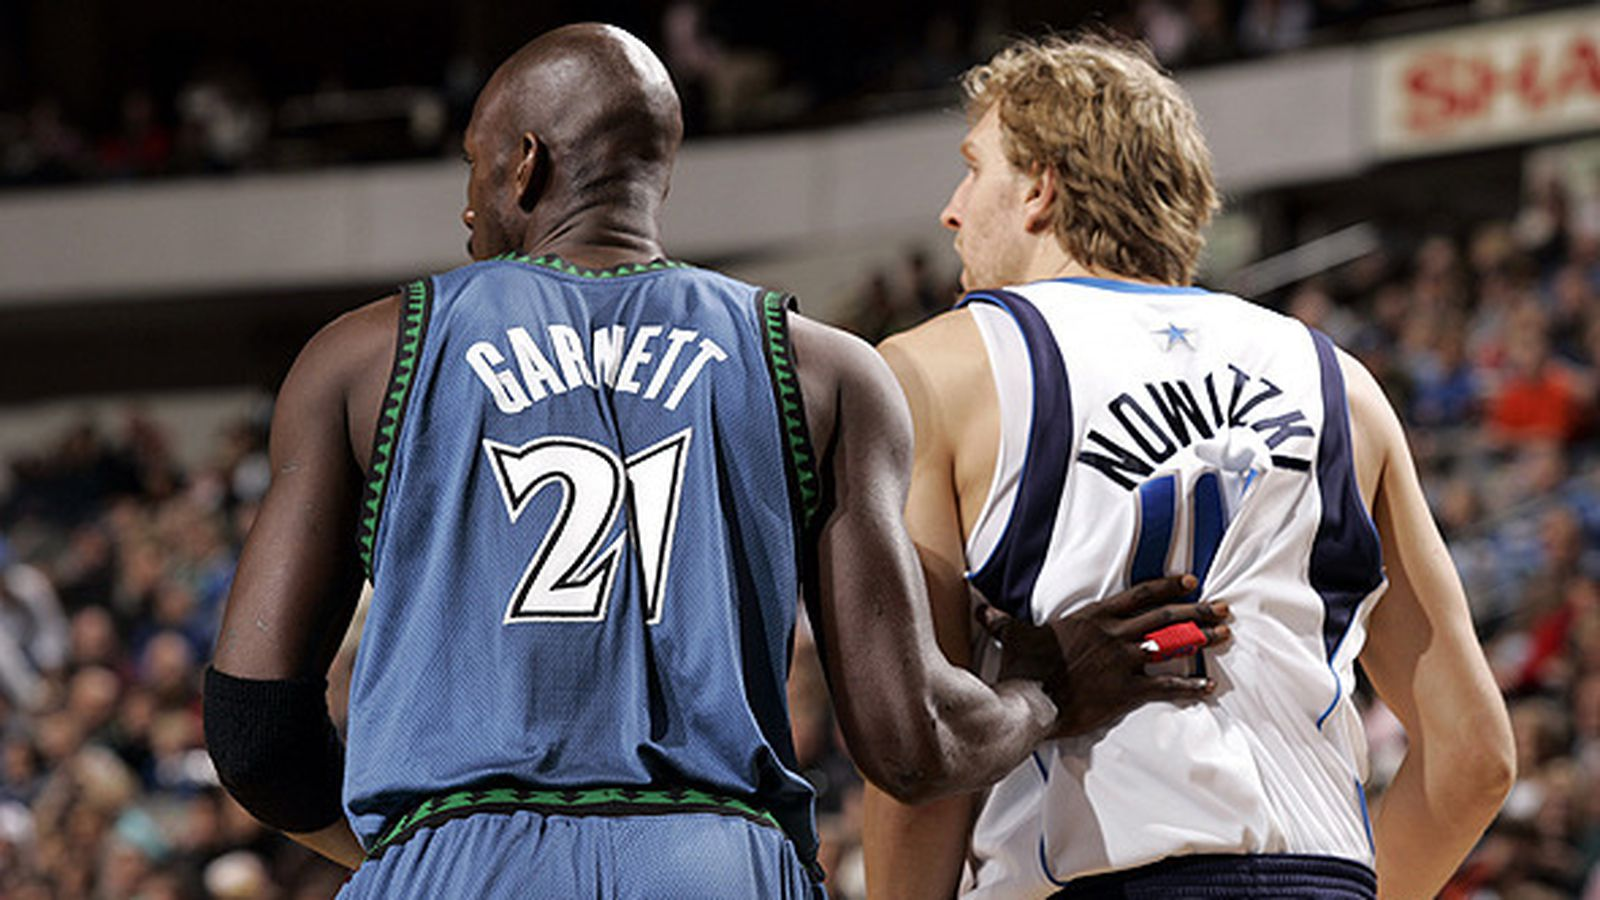 KG forever changed basketball and Dirk, too